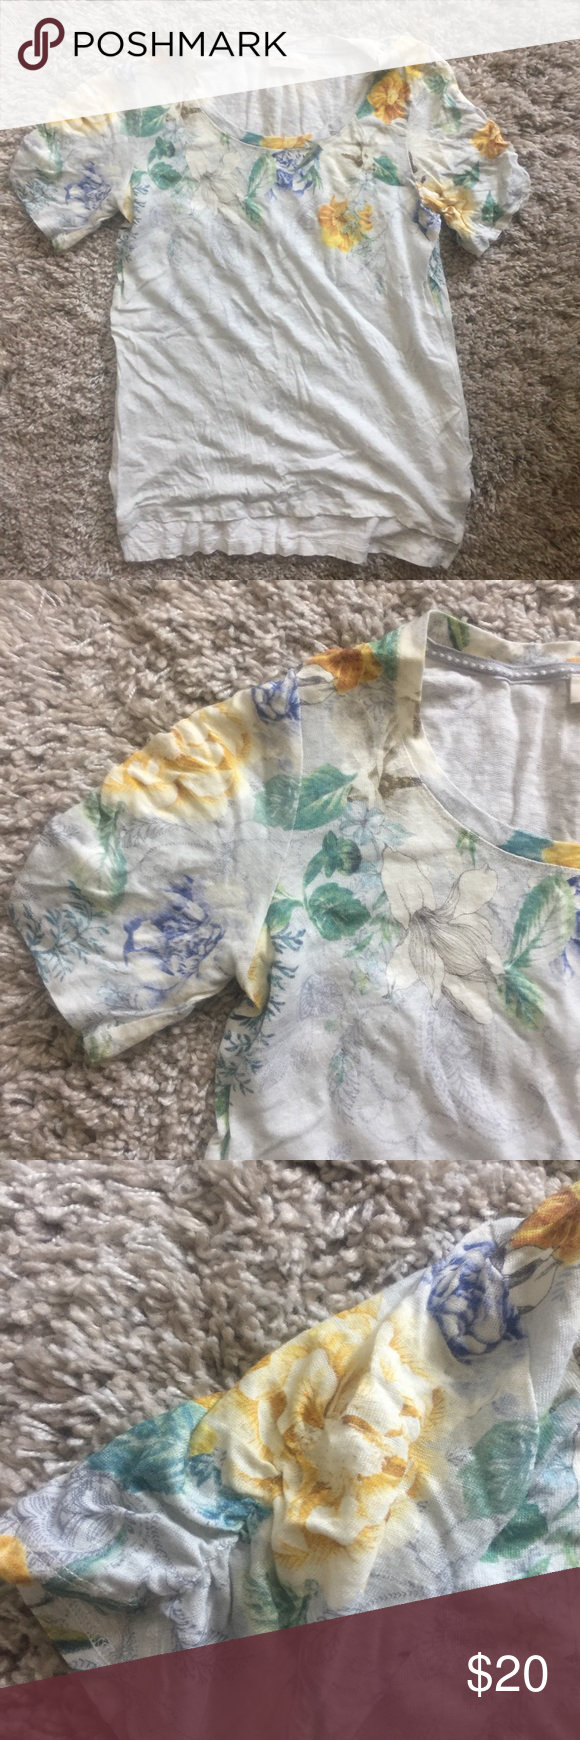 Anthropologie tee Excellent condition. Brand is Meadow rue Anthropologie Tops Tees - Short Sleeve